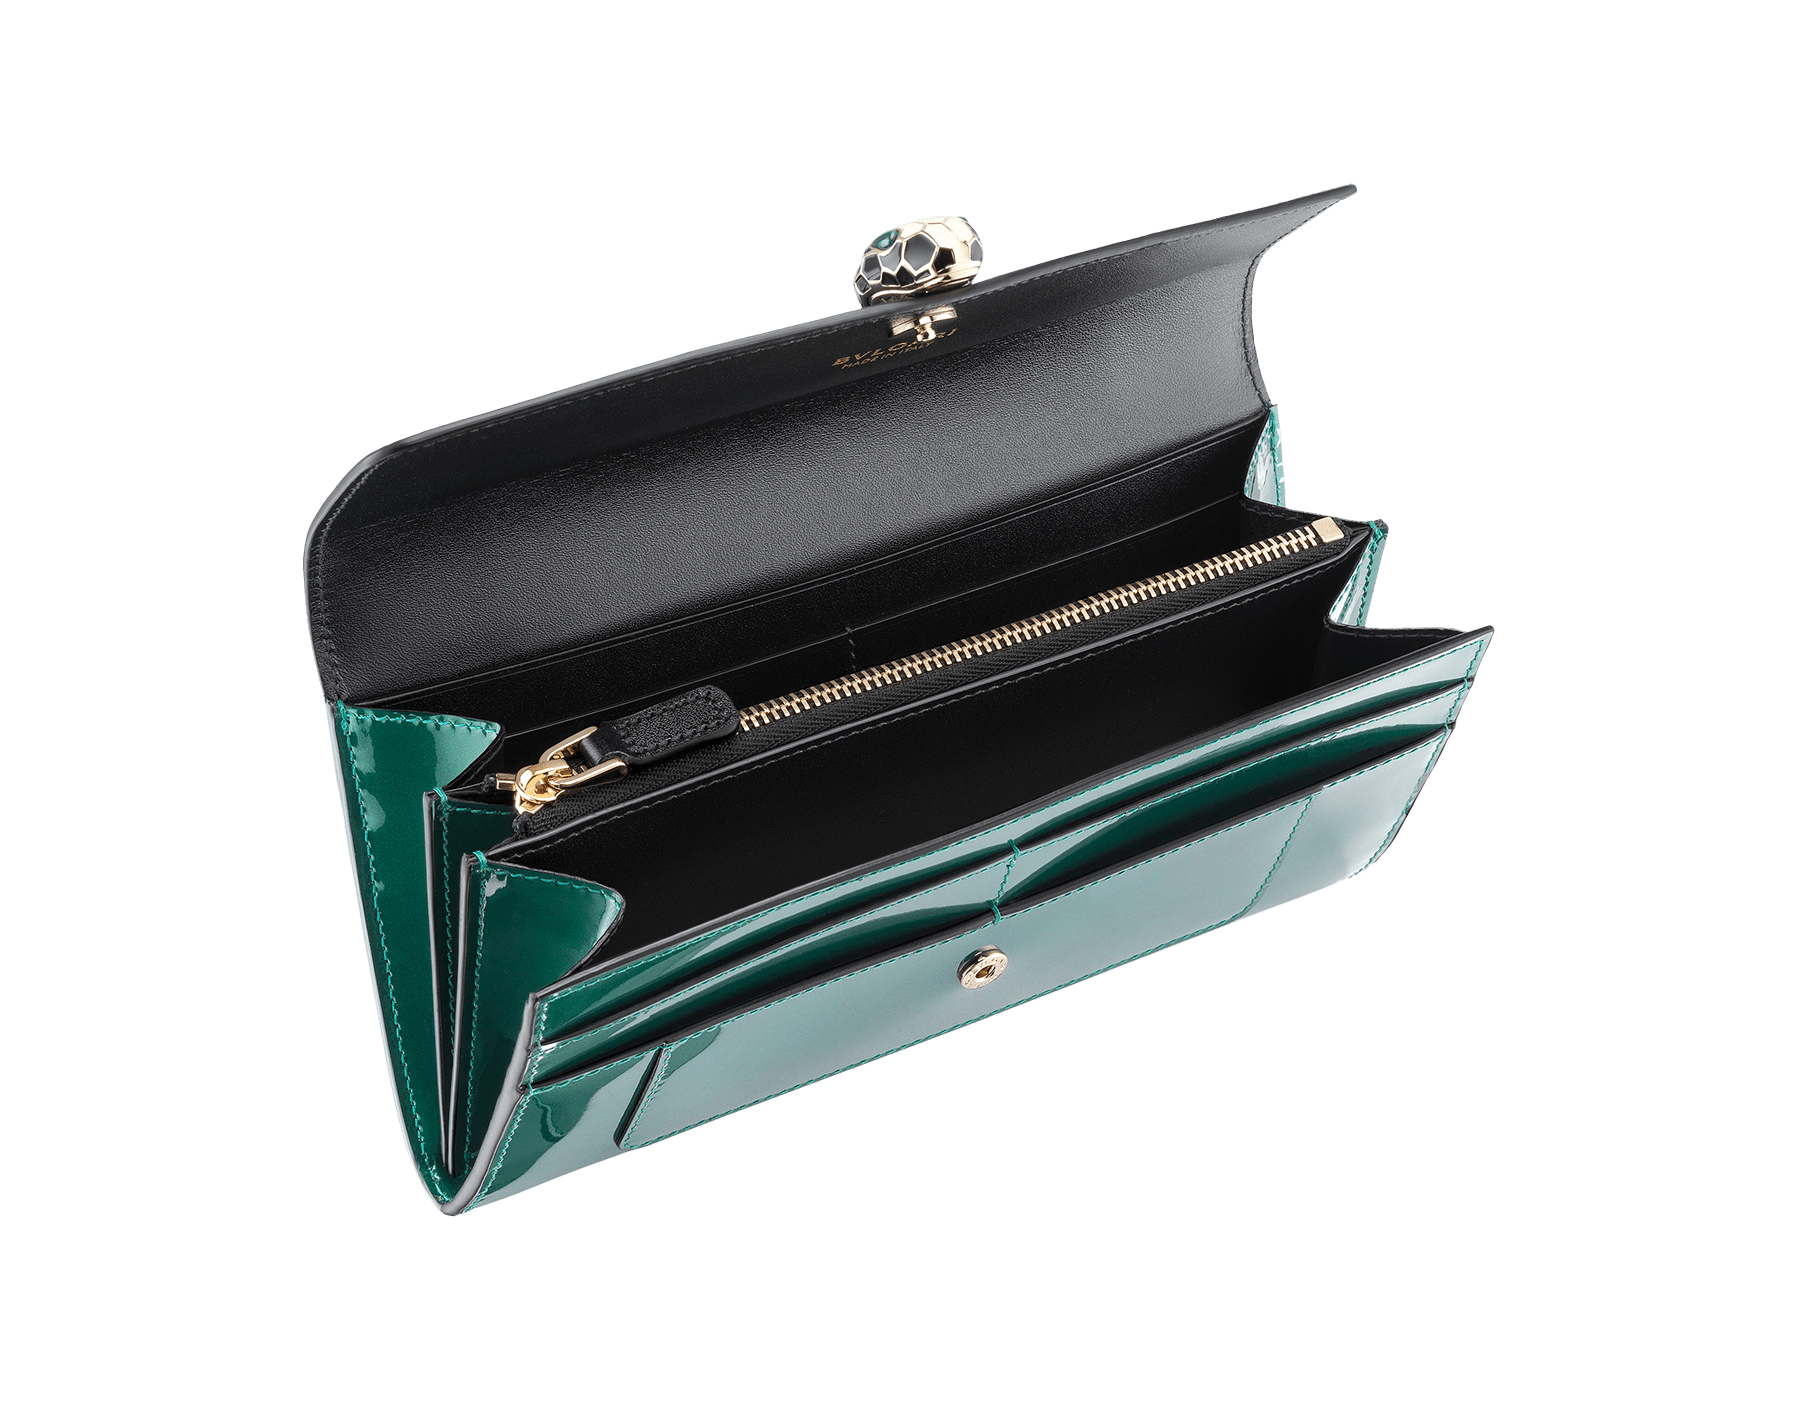 Wallet pochette in forest emerald brushed metallic calf leather and black calf leather with black nappa lining. Brass light gold plated hardware. Serpenti head stud closure in black and white enamel with eyes in green malachite. 283675 image 2